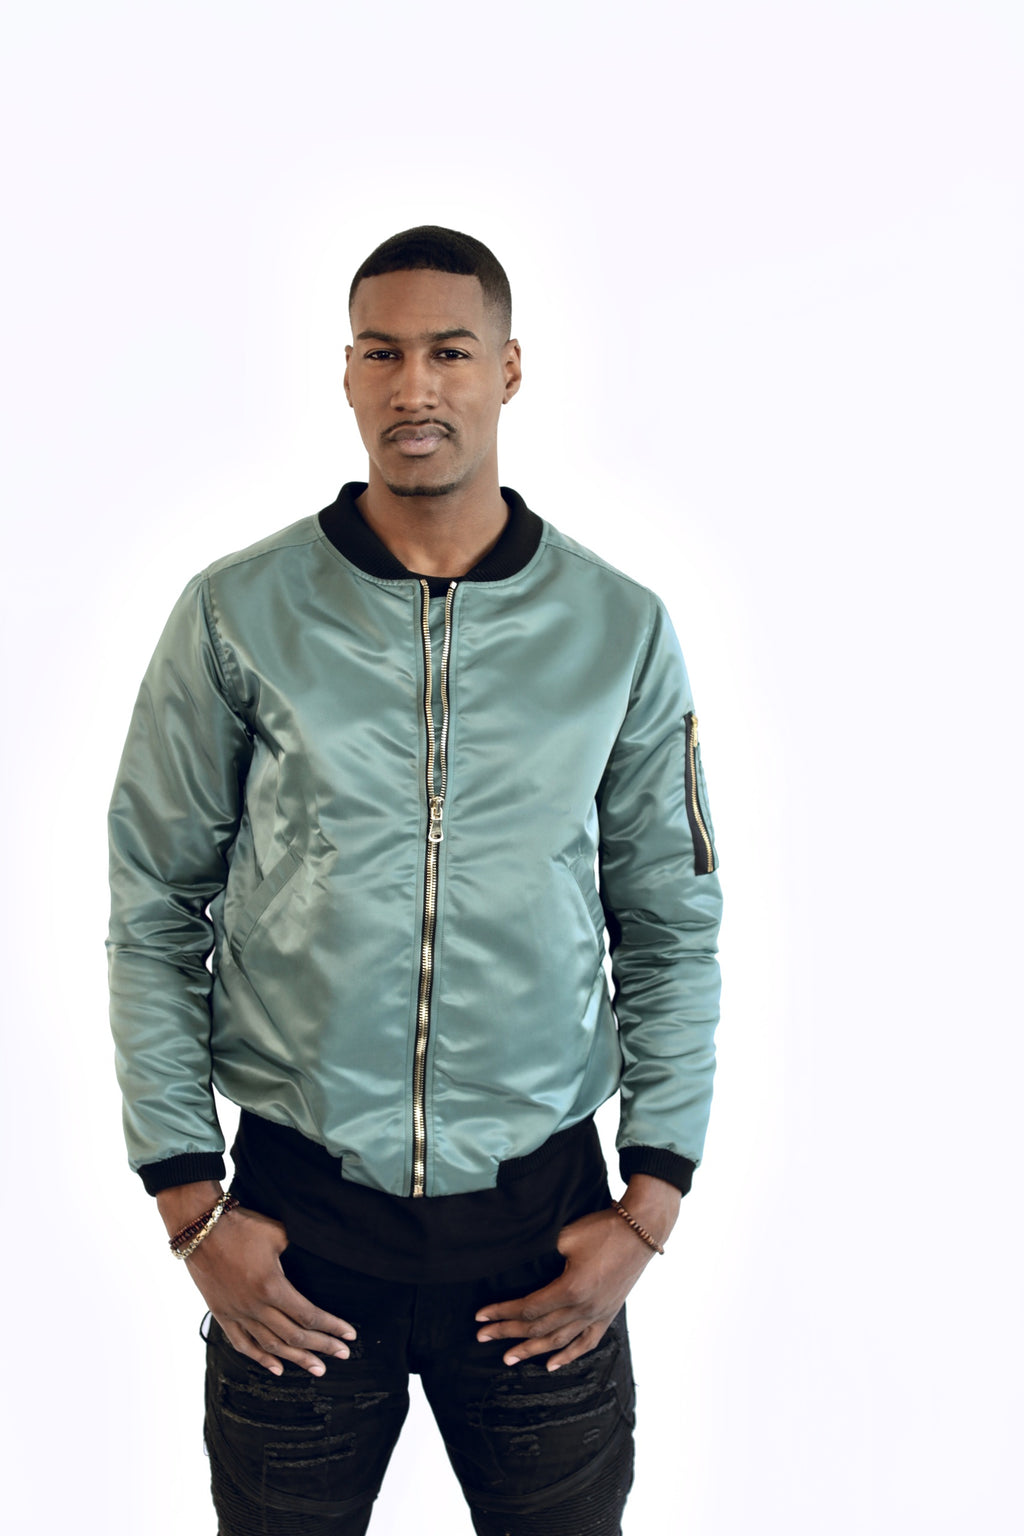 Custom Military Men's Bomber Jacket